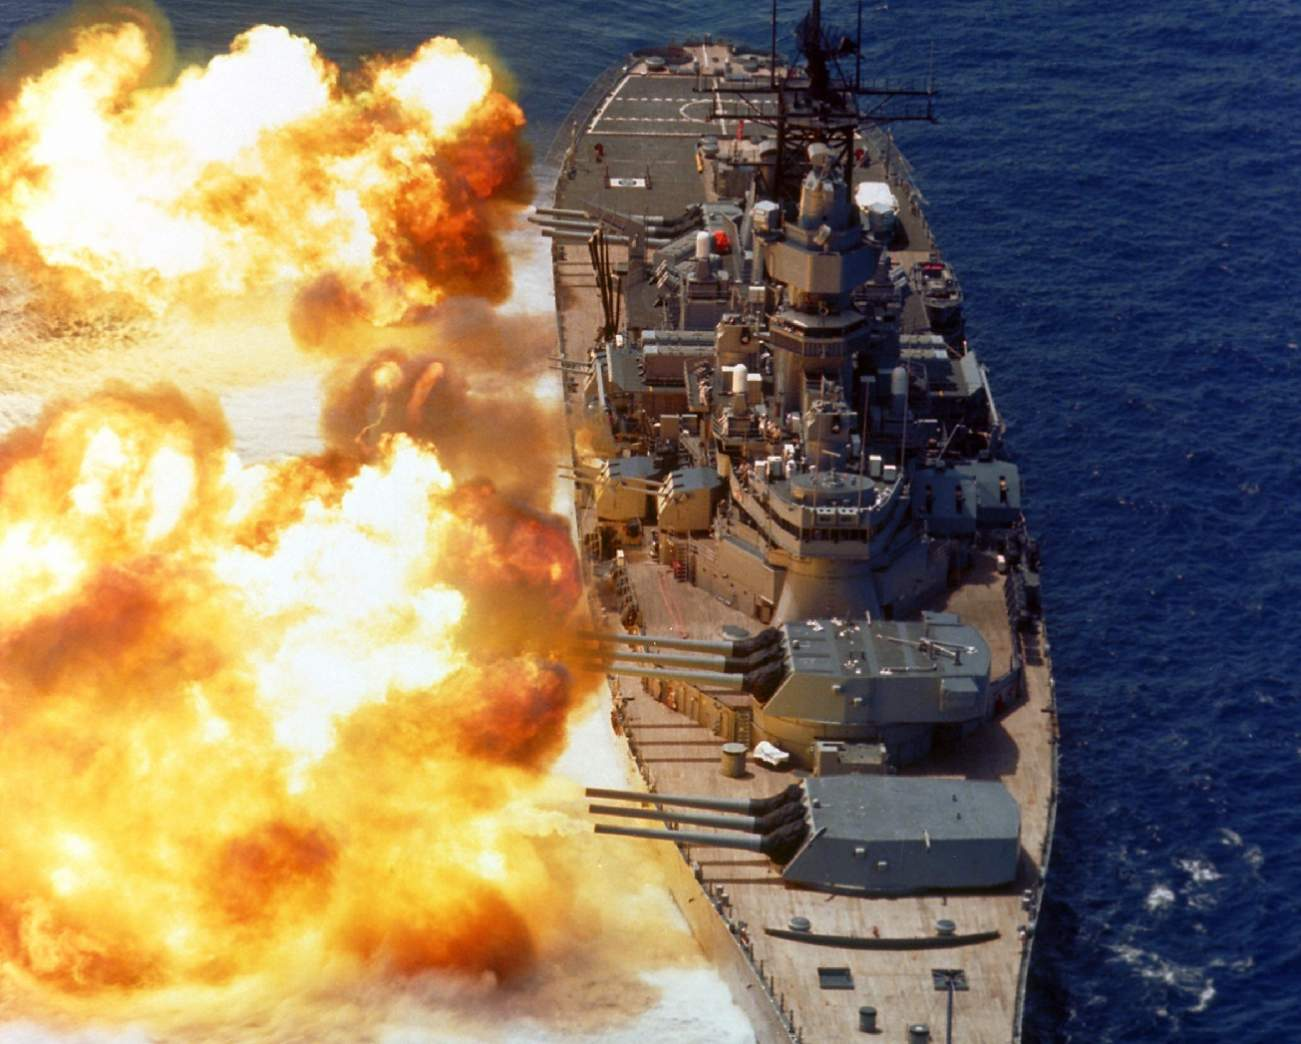 While You Will Never See a Battleship Fire Its Big Guns Ever Again